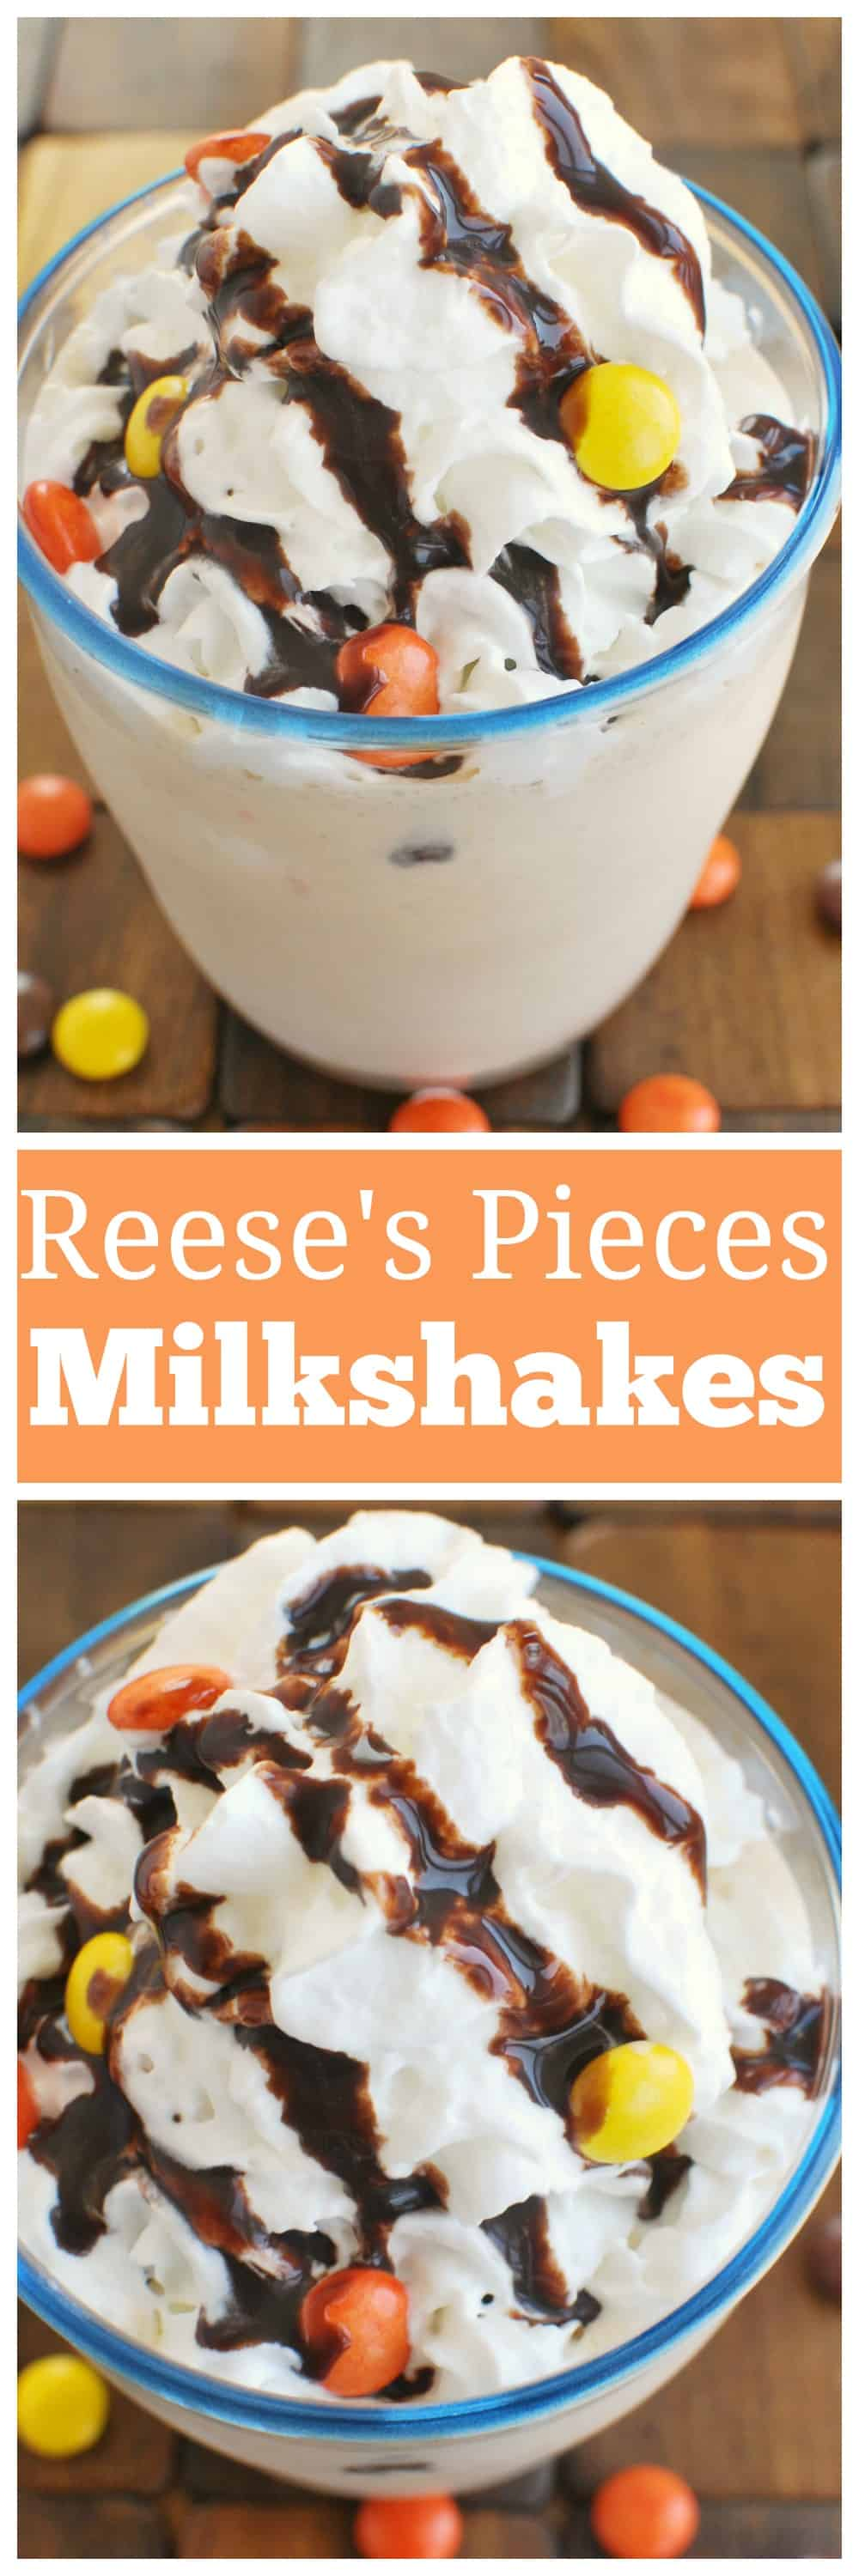 Reese's Pieces Milkshake